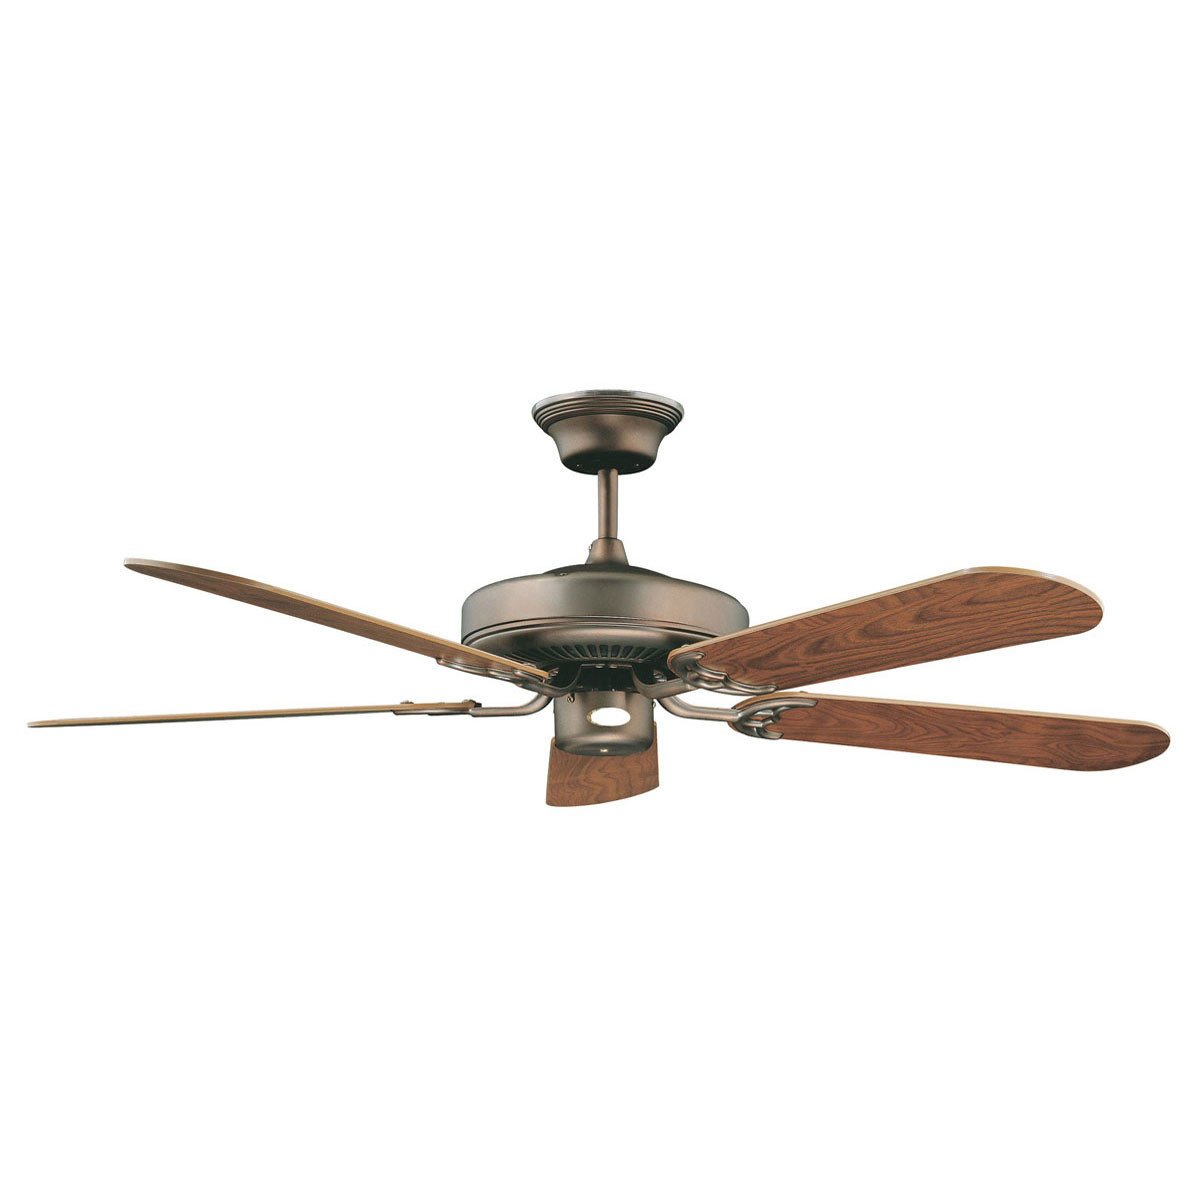 "Concord Fans Decorama Energy Saver 42"" Small Oil Brushed Brass Ceiling Fan"